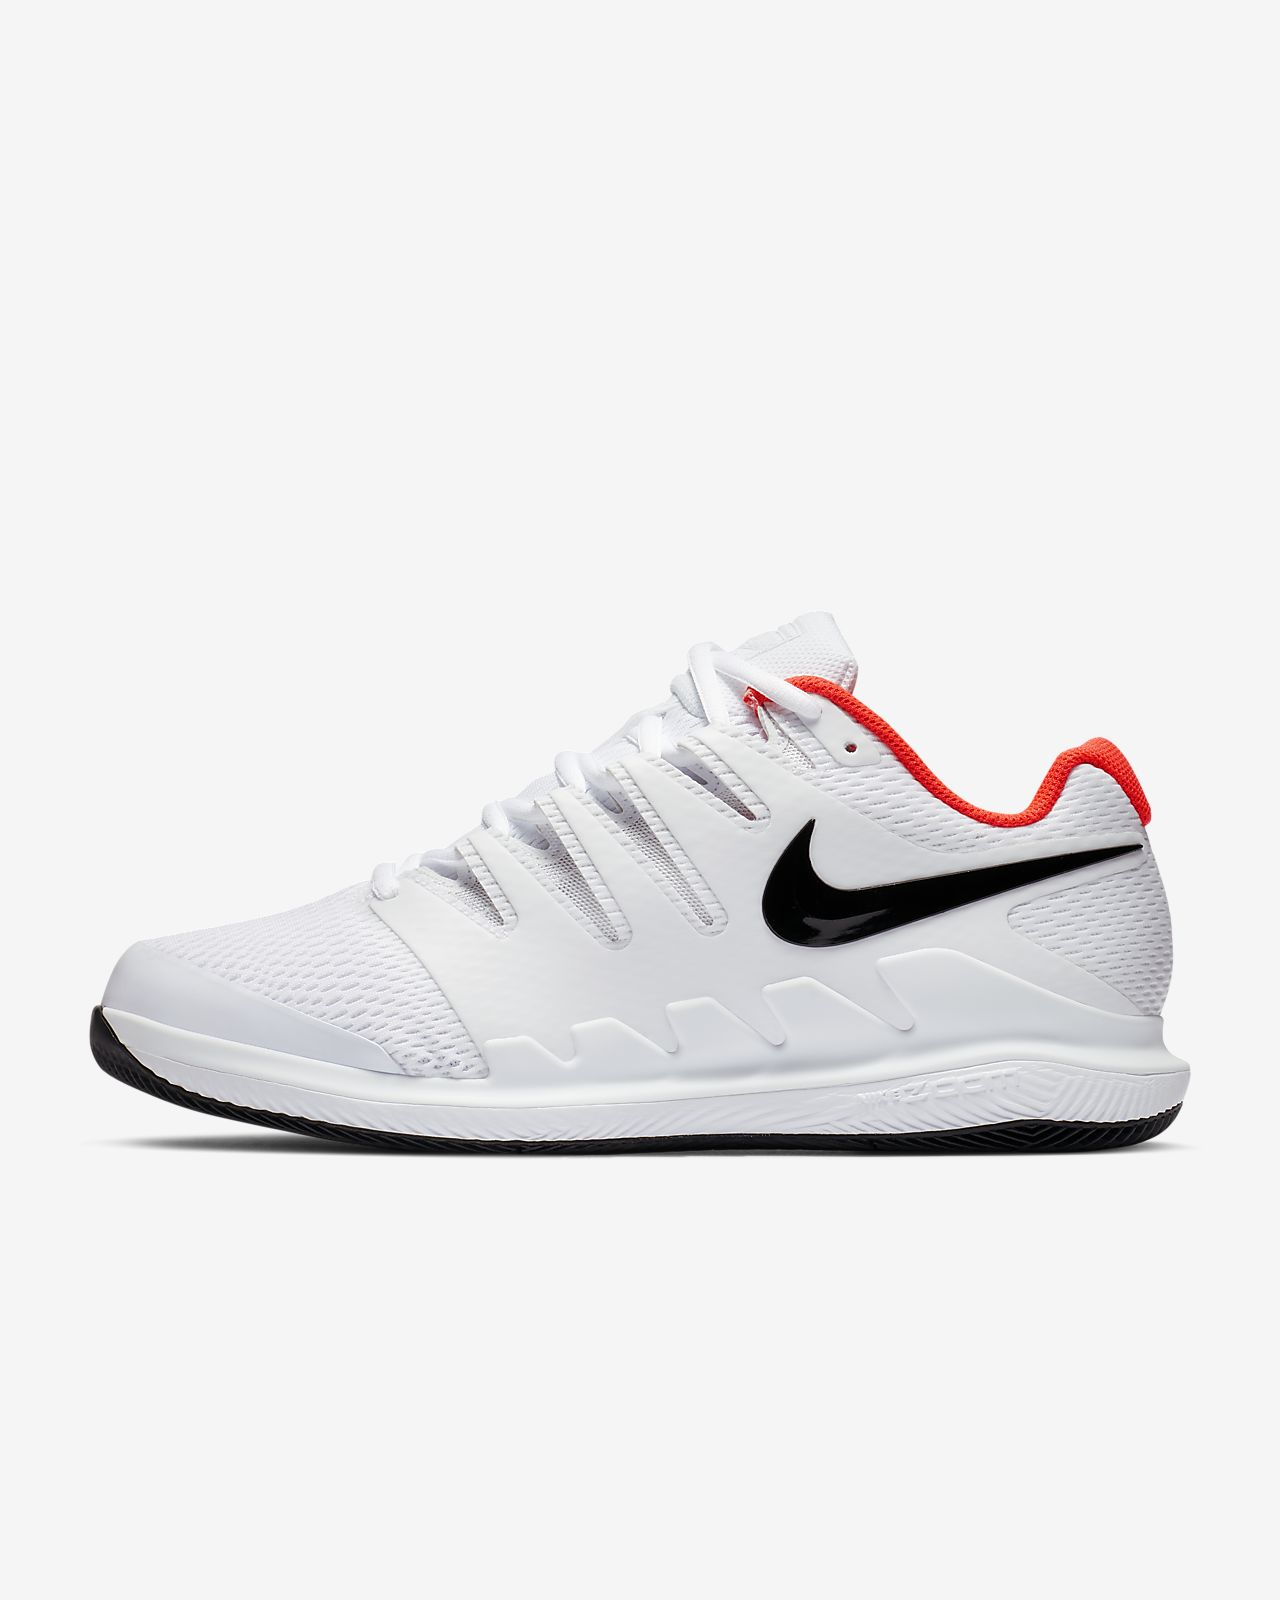 dfdc7d72c Nike Air Zoom Vapor X (Wide) Men's Tennis Shoe. Nike.com